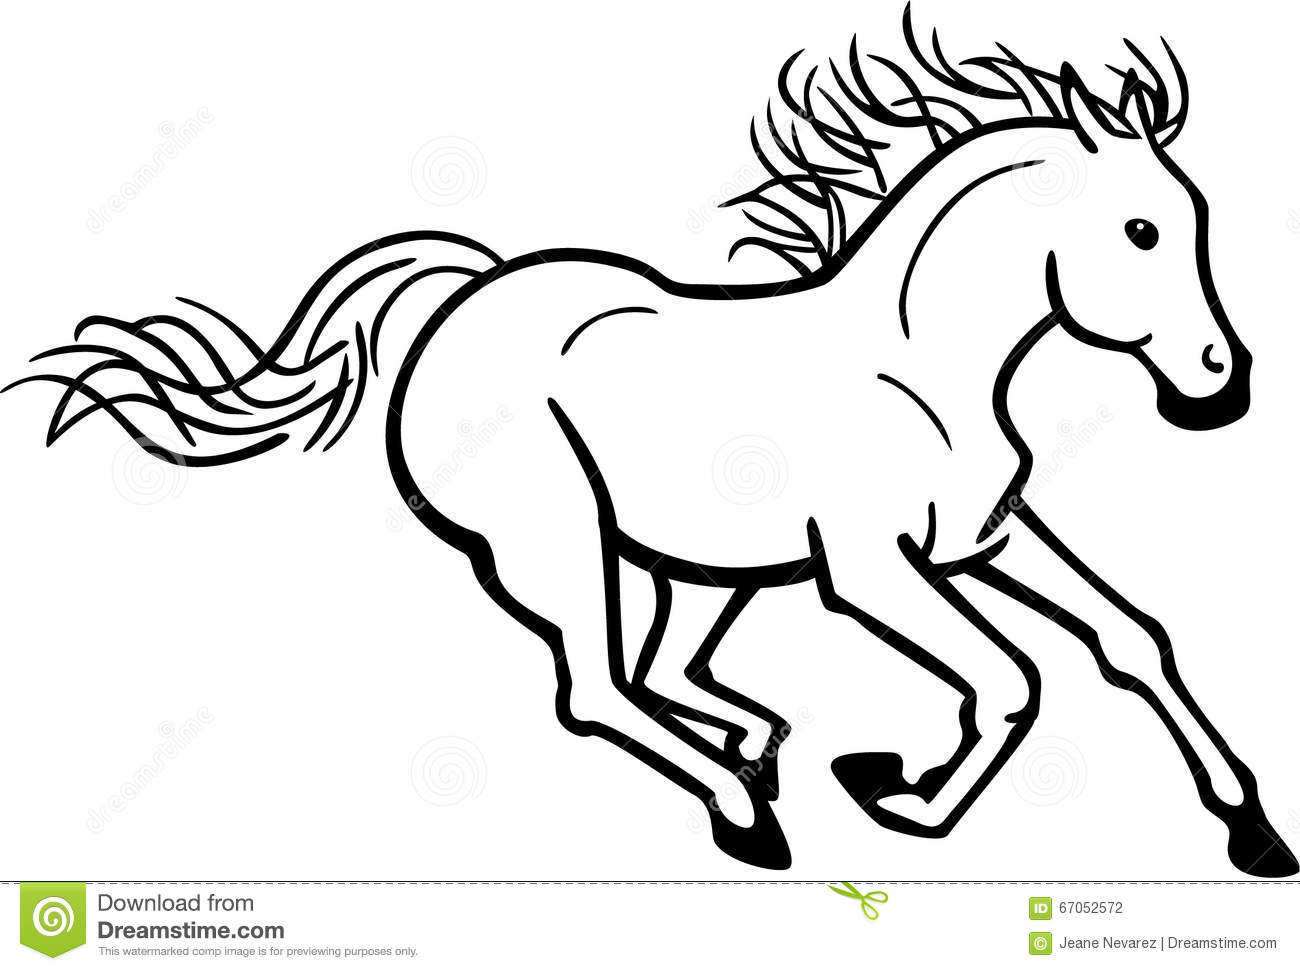 Jpg To Line Drawing : Galloping horse stock vector image